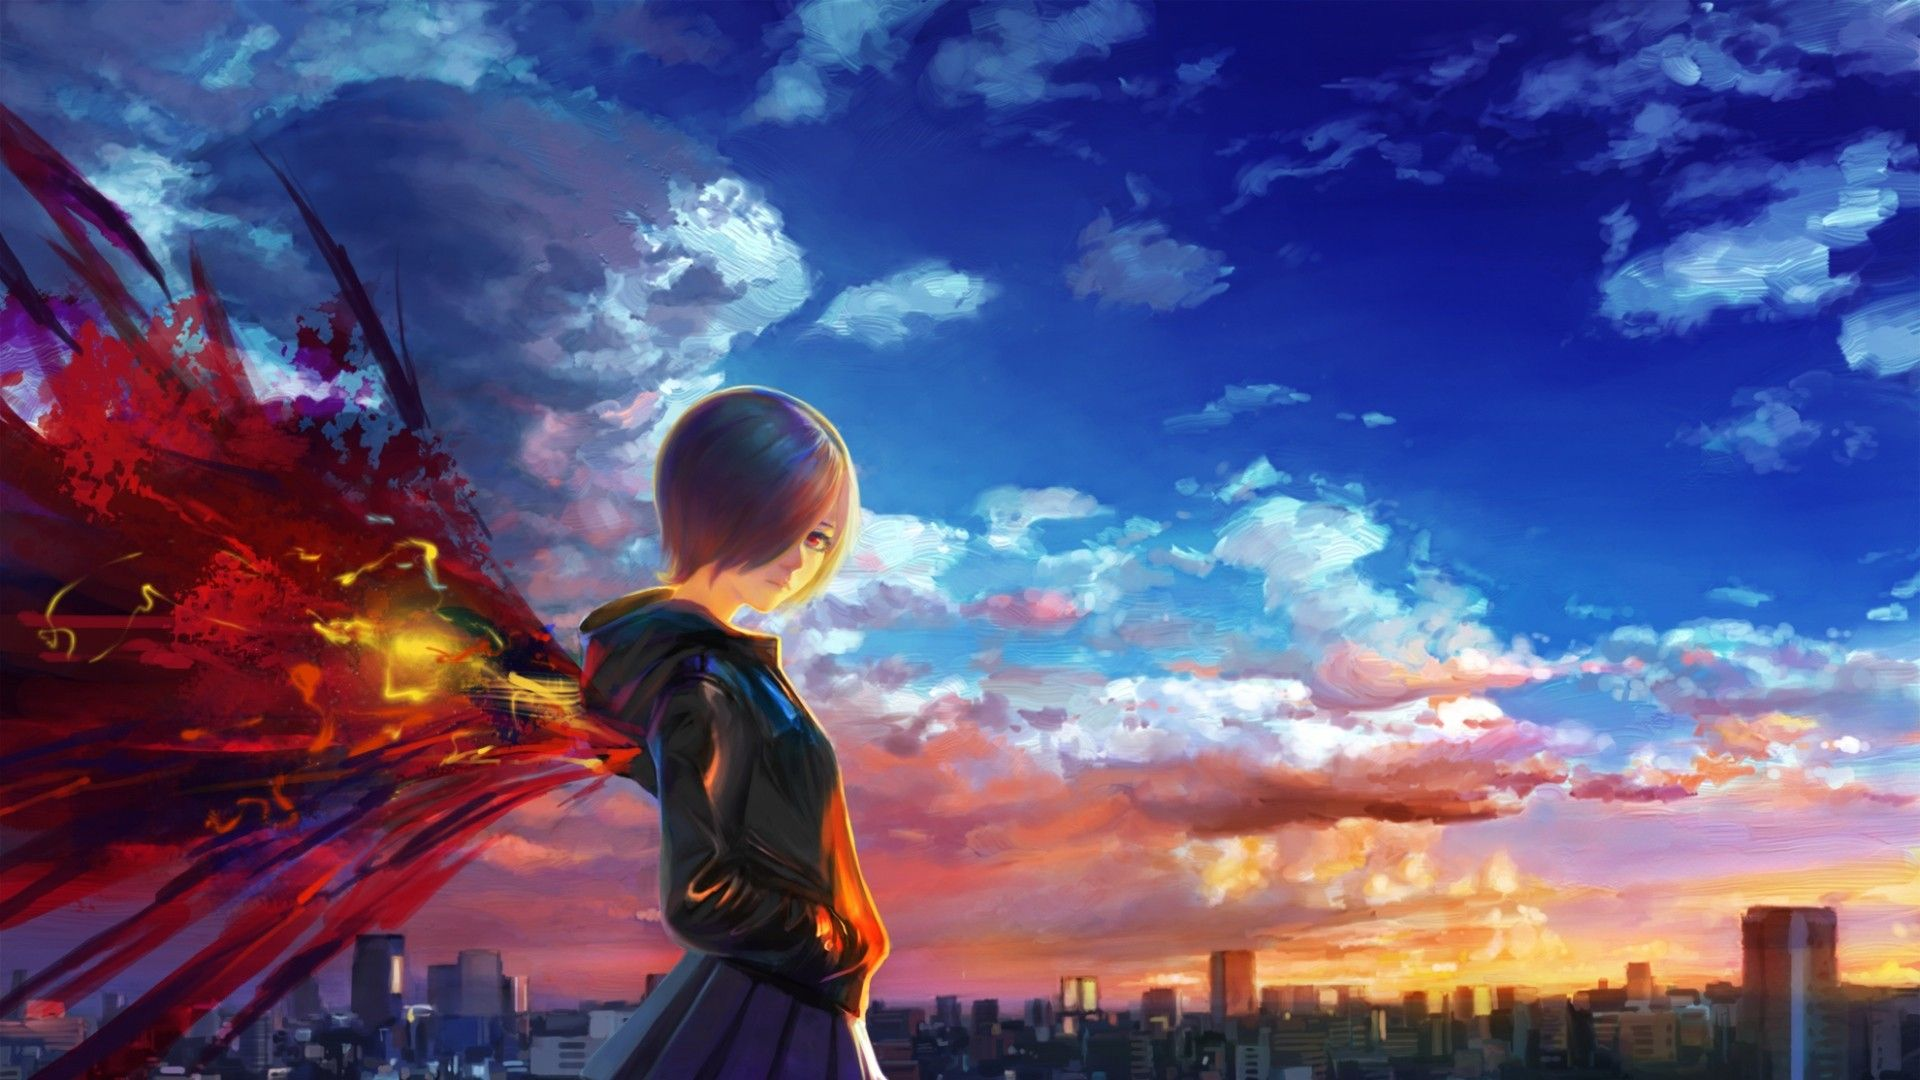 Anime 1920x1080 hd desktop wallpapers top free anime - Best website to download desktop wallpapers ...